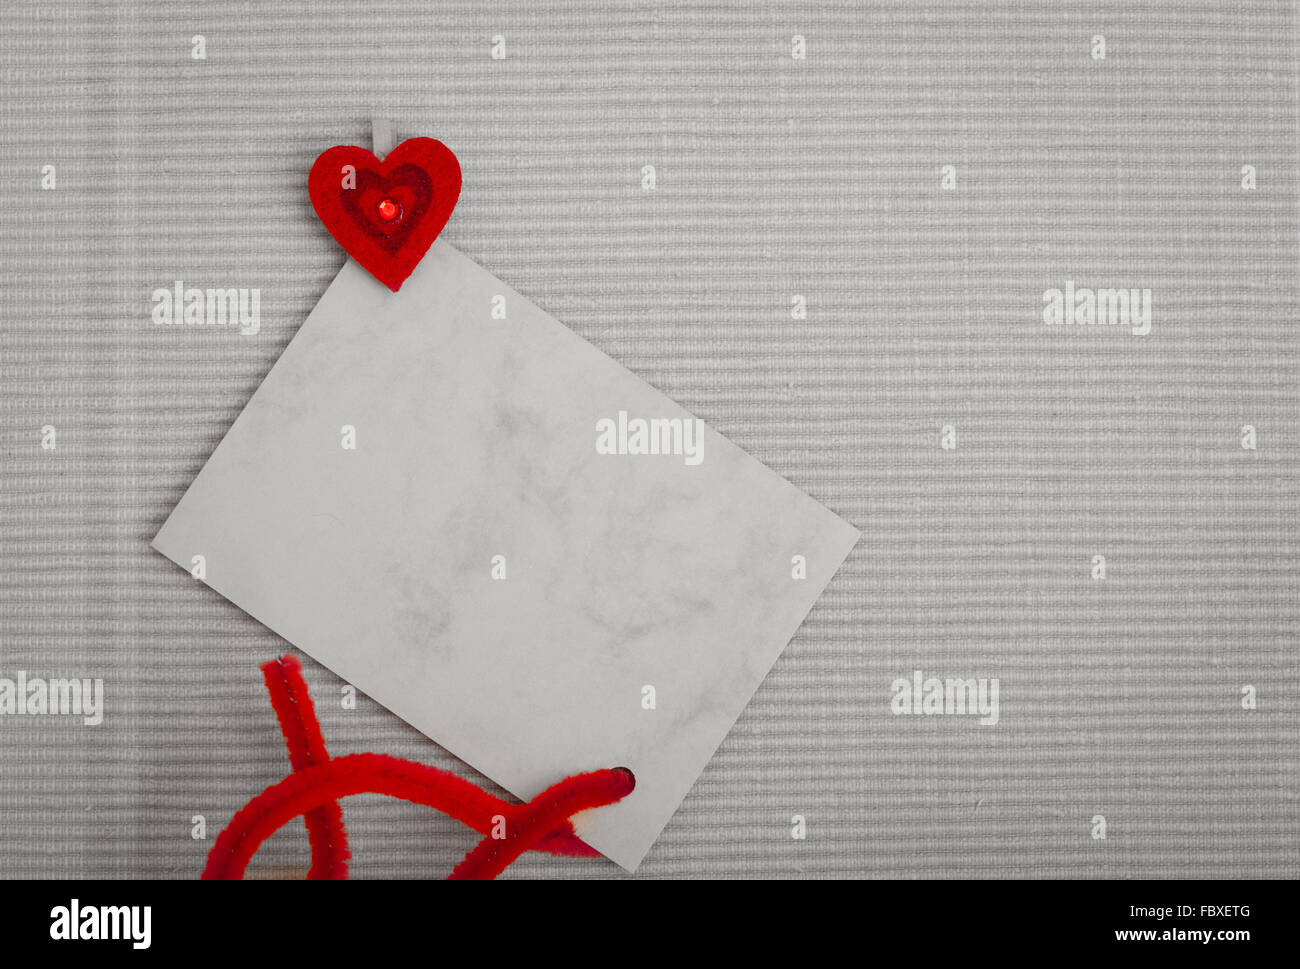 Blank card copy space text message and red heart symbol love stock blank card copy space text message and red heart symbol love biocorpaavc